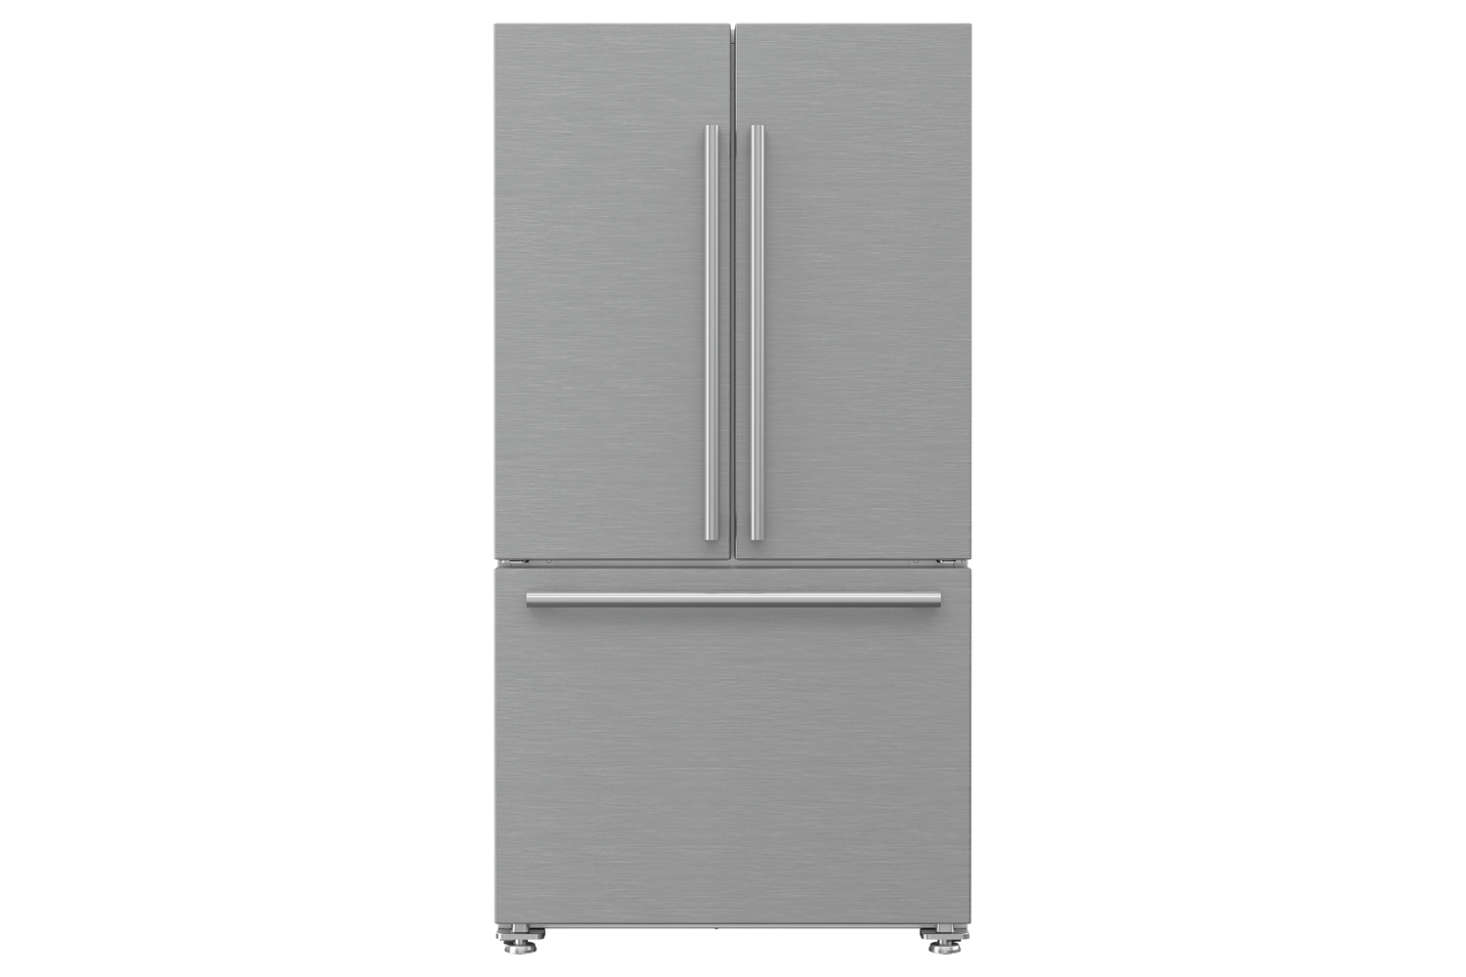 Charmant The Blomberg 36 Inch Counter Depth French Door Refrigerator (BRFD2230SS) Is  29